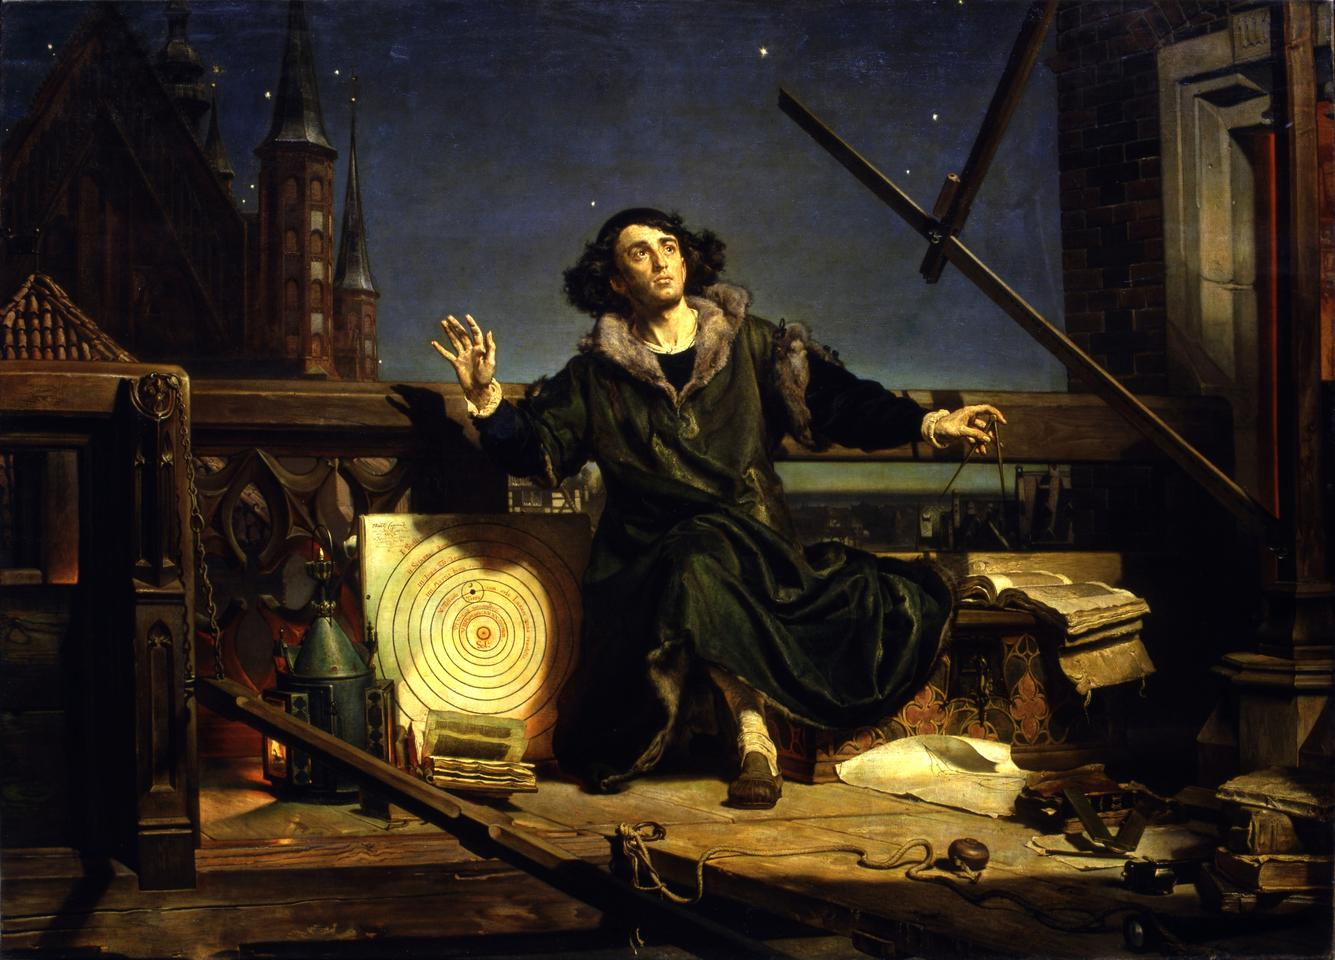 Astronomer Copernicus, or Conversations with God (Polish: Astronom Kopernik, czyli rozmowa z Bogiem) is a painting by the Polish artist Jan Matejko completed in 1873, in the collection of the Jagiellonian University, Kraków. It depicts Nicolaus Copernicus observing the heavens from a balcony in a tower with the cathedral in Frombork in the background.